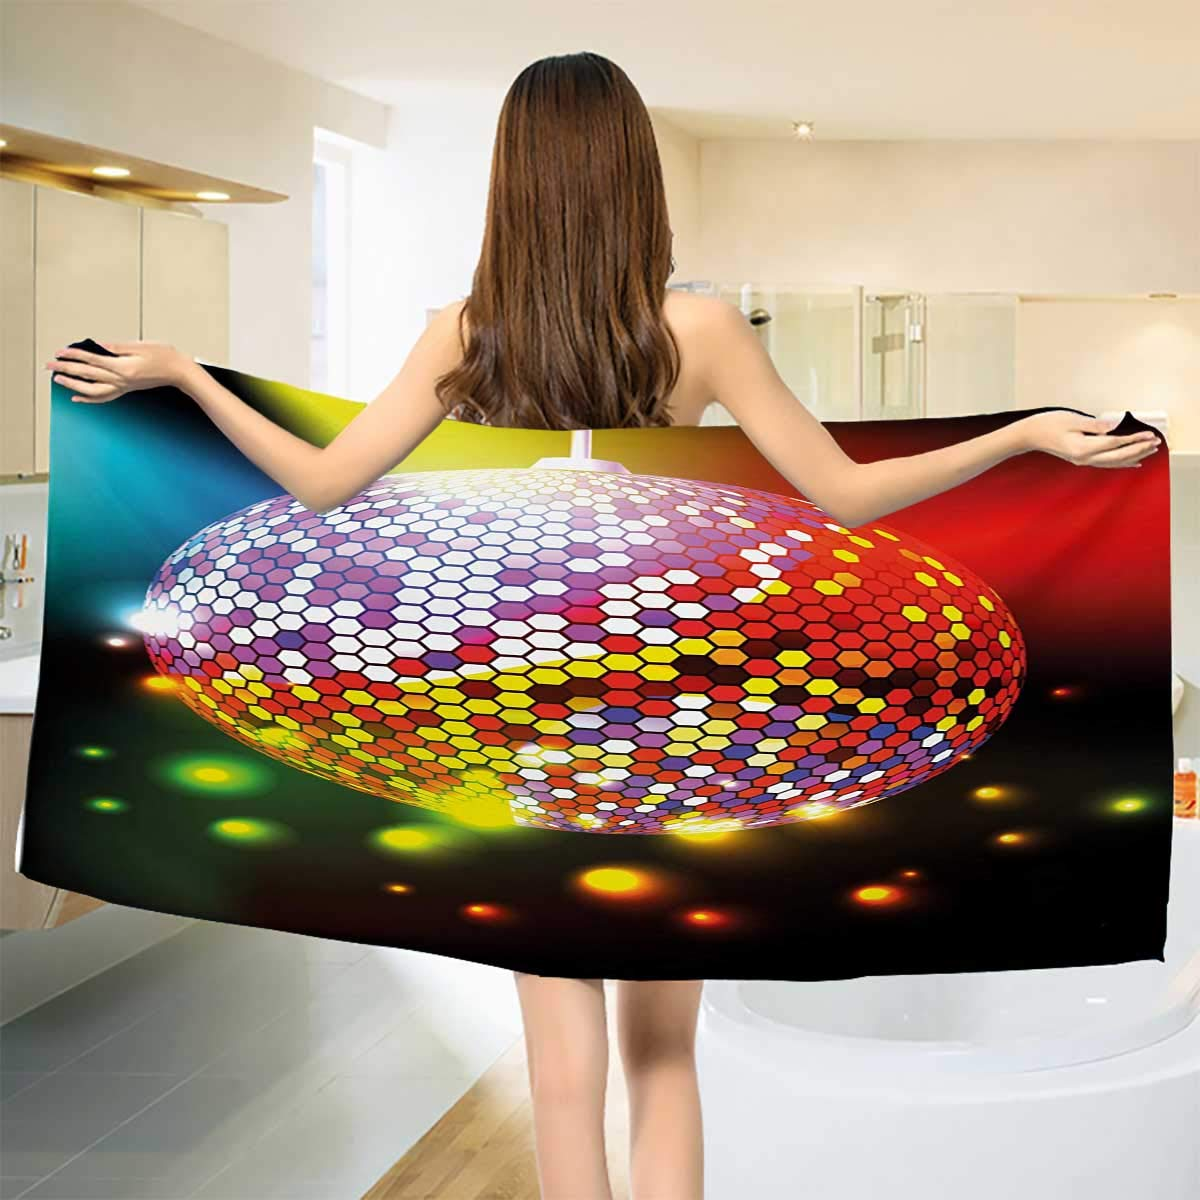 Chaneyhouse Popstar Party,Bath Towel,Vibrant Colorful Disco Ball Nightclub Celebration Party Dance and Music Print,Bathroom Towels,Multicolor Size: W 31.5'' x L 63''